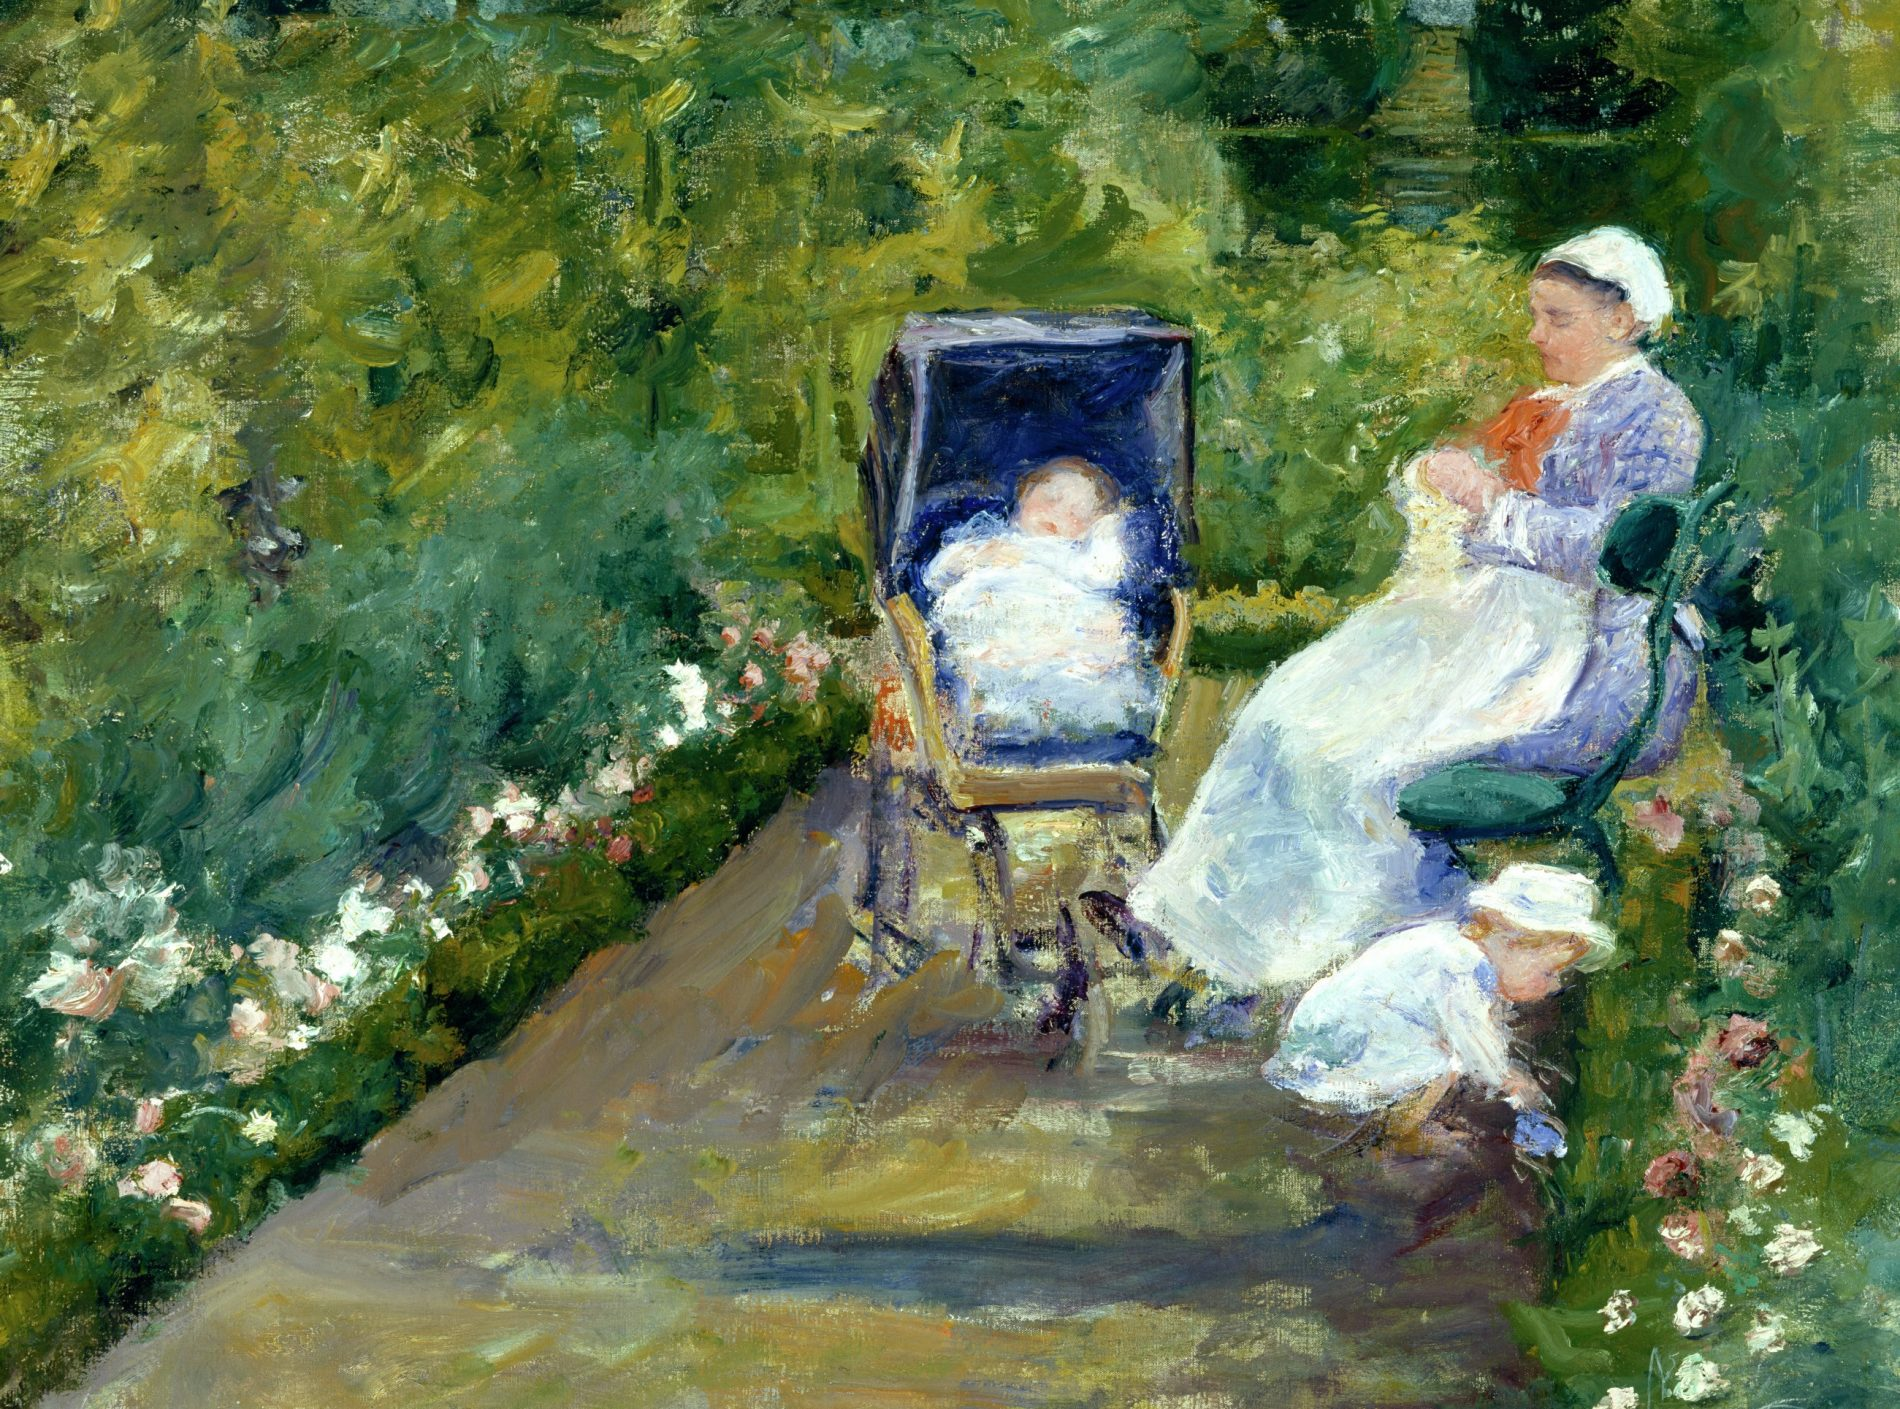 Mary Cassatt, Children in a Garden (The Nurse), 1878. The Museum of Fine Arts, Houston, Gift of Mr. and Mrs. Meredith J. Long, 2001.471.